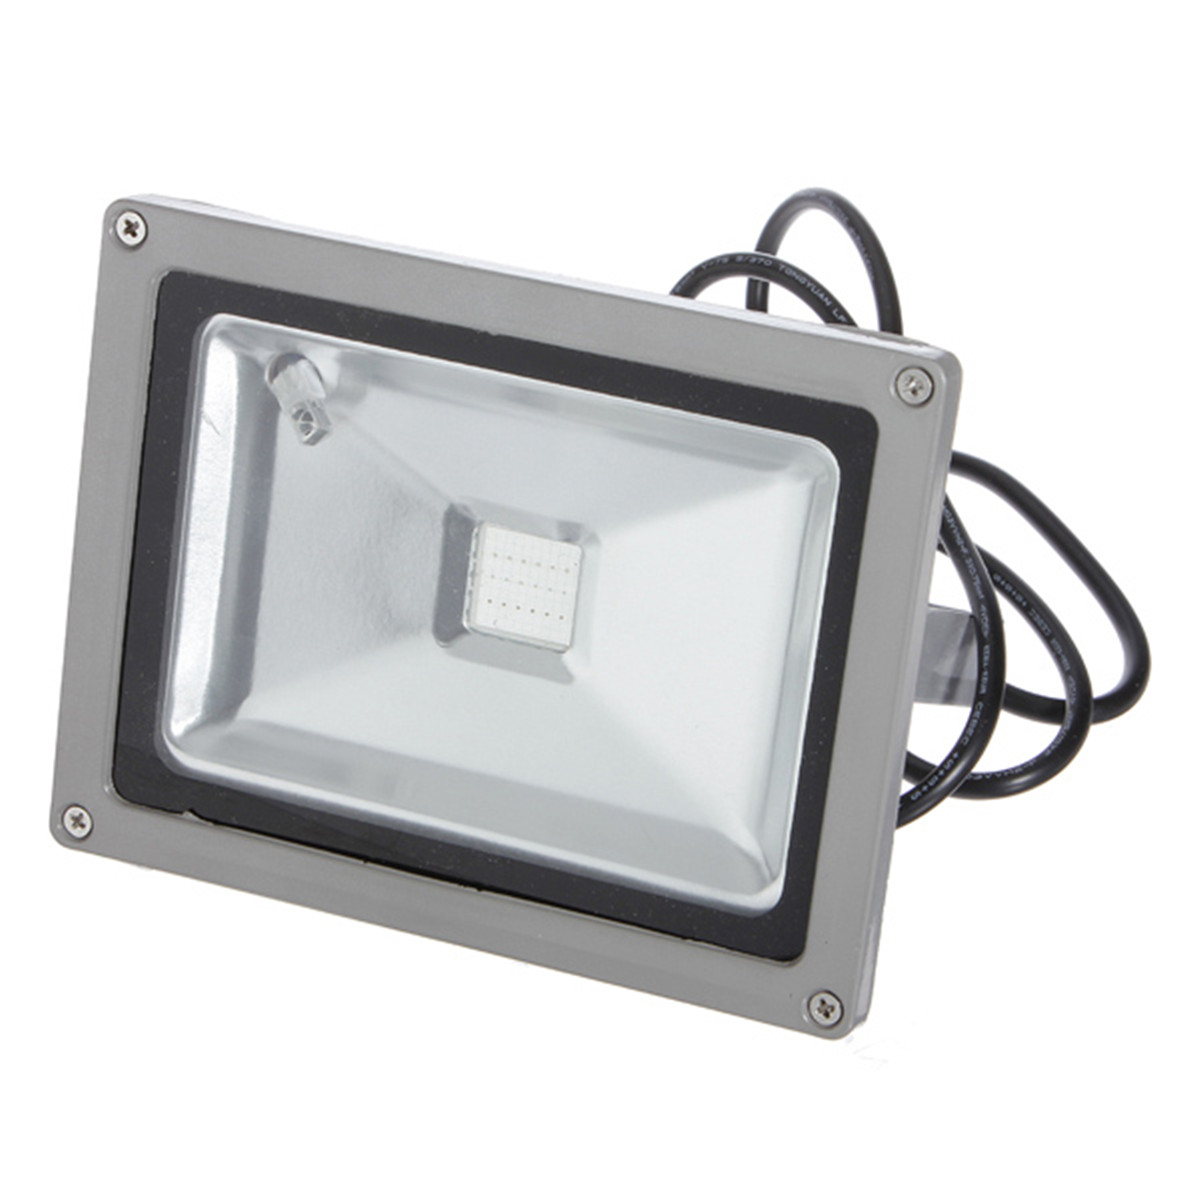 20w led lampe projecteur rgb exterieur lumiere ip65 On lampe a led exterieur